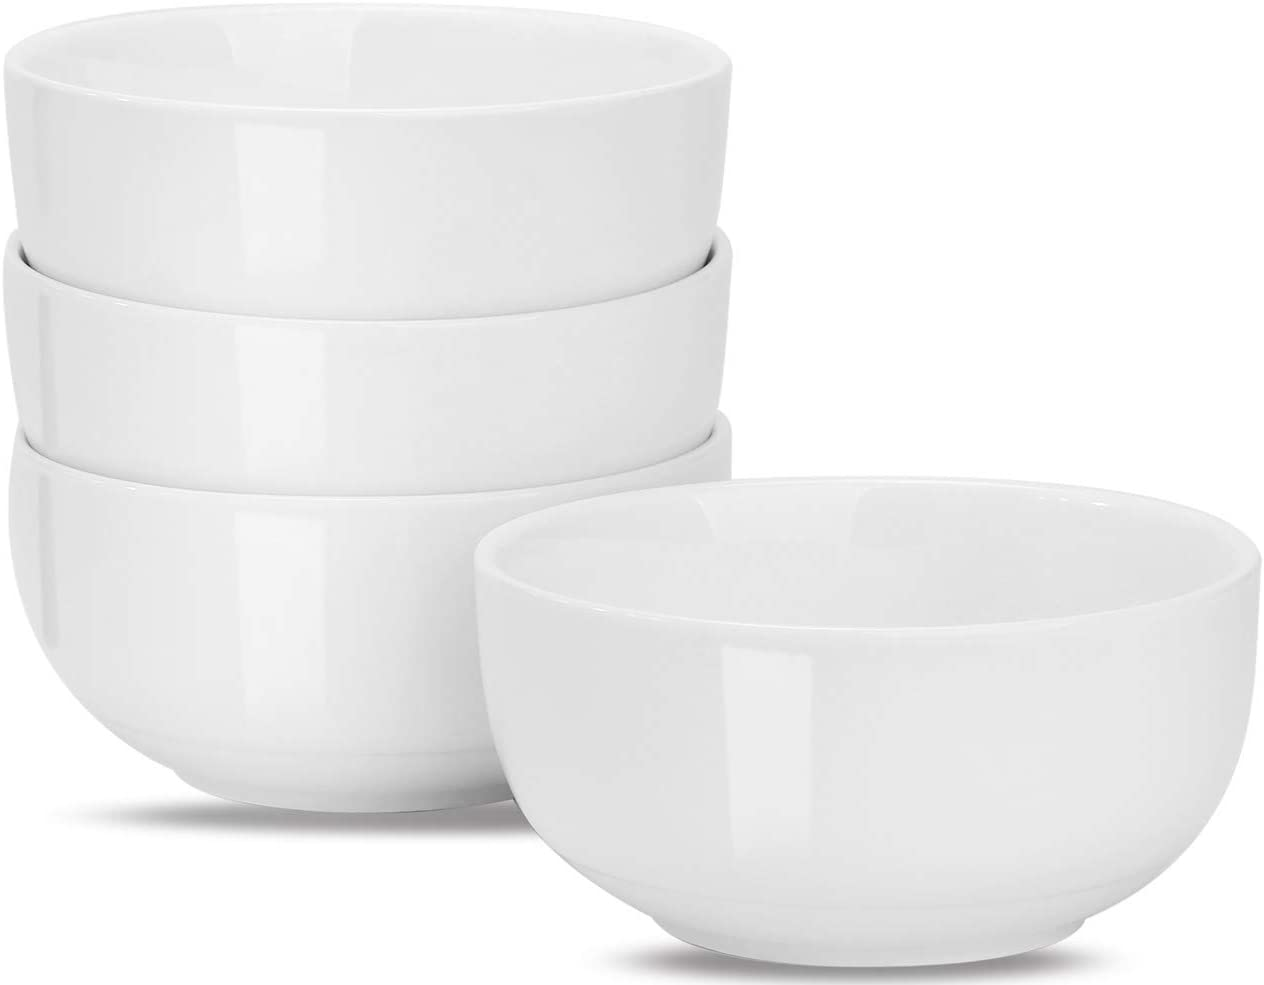 MueYan Porcelain Bowl Set - 28 Ounce for Cereal, Soup, Pasta, Salad and Ice Creams, Dessert, Mixing Bowls - Set of 4, White, Microwave and Dishwasher Safe Bowls